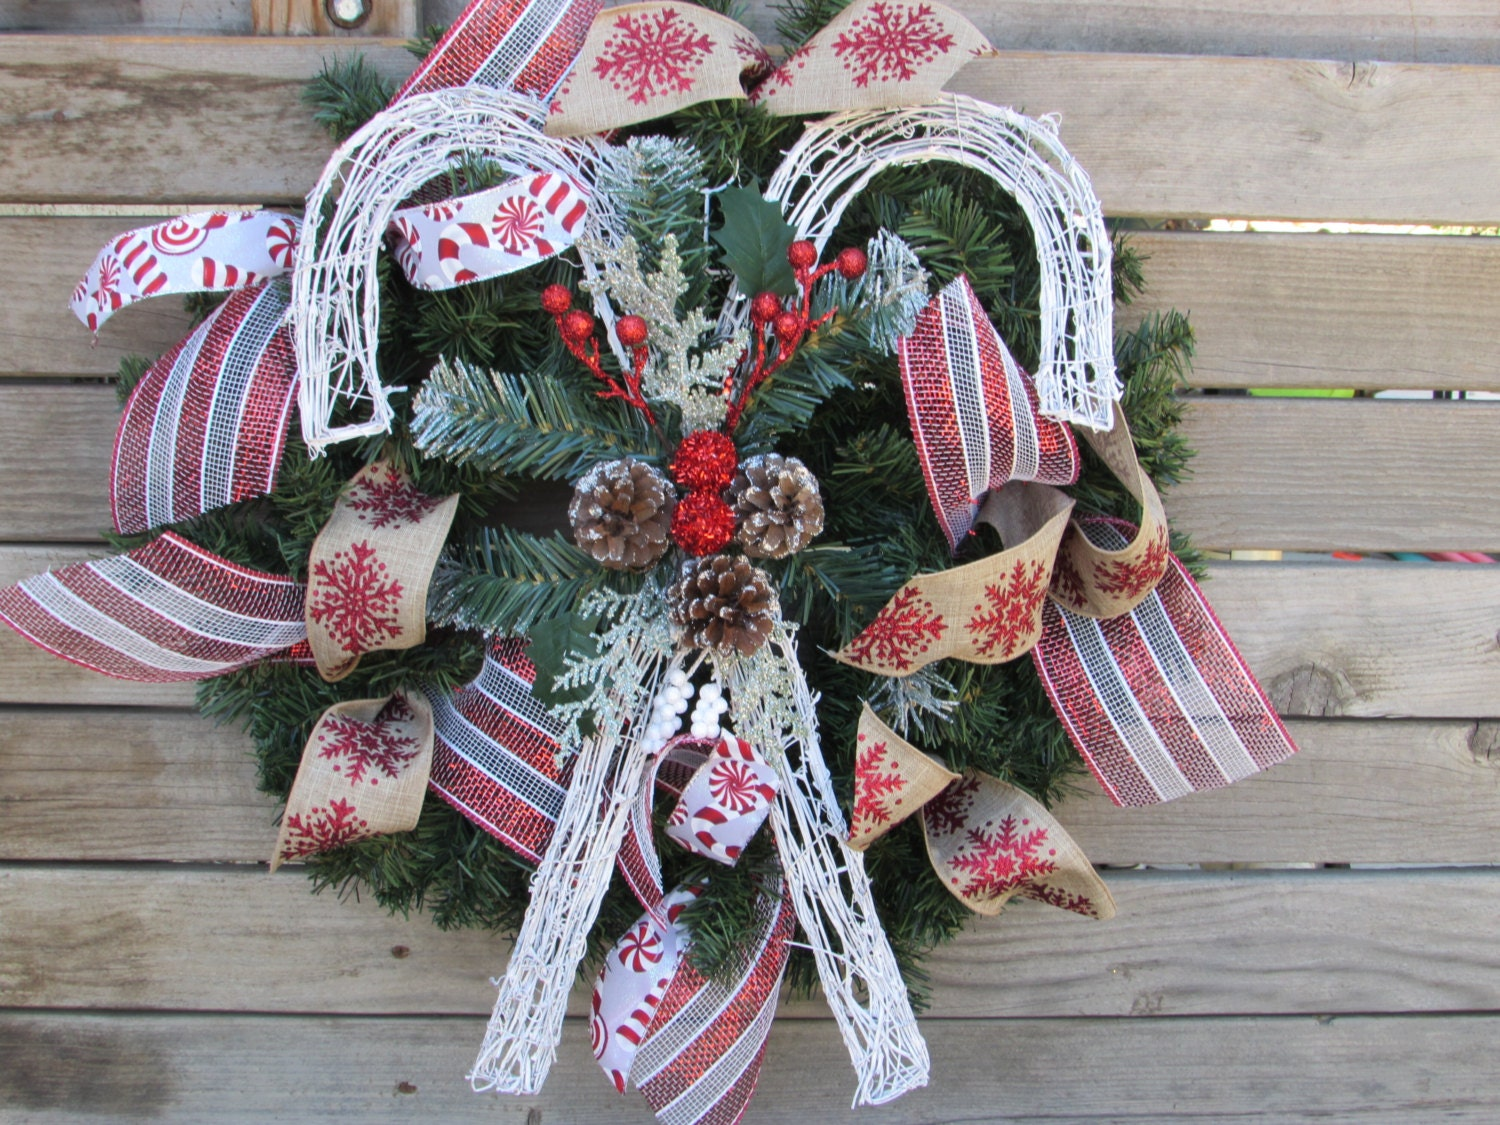 "22"" Christmas Candy Cane Wreath- Christmas Greenery Wreath- Pinecone Greenery Wreath- Deco Mesh Christmas Wreath- Winter Wreath- Candy Cane"